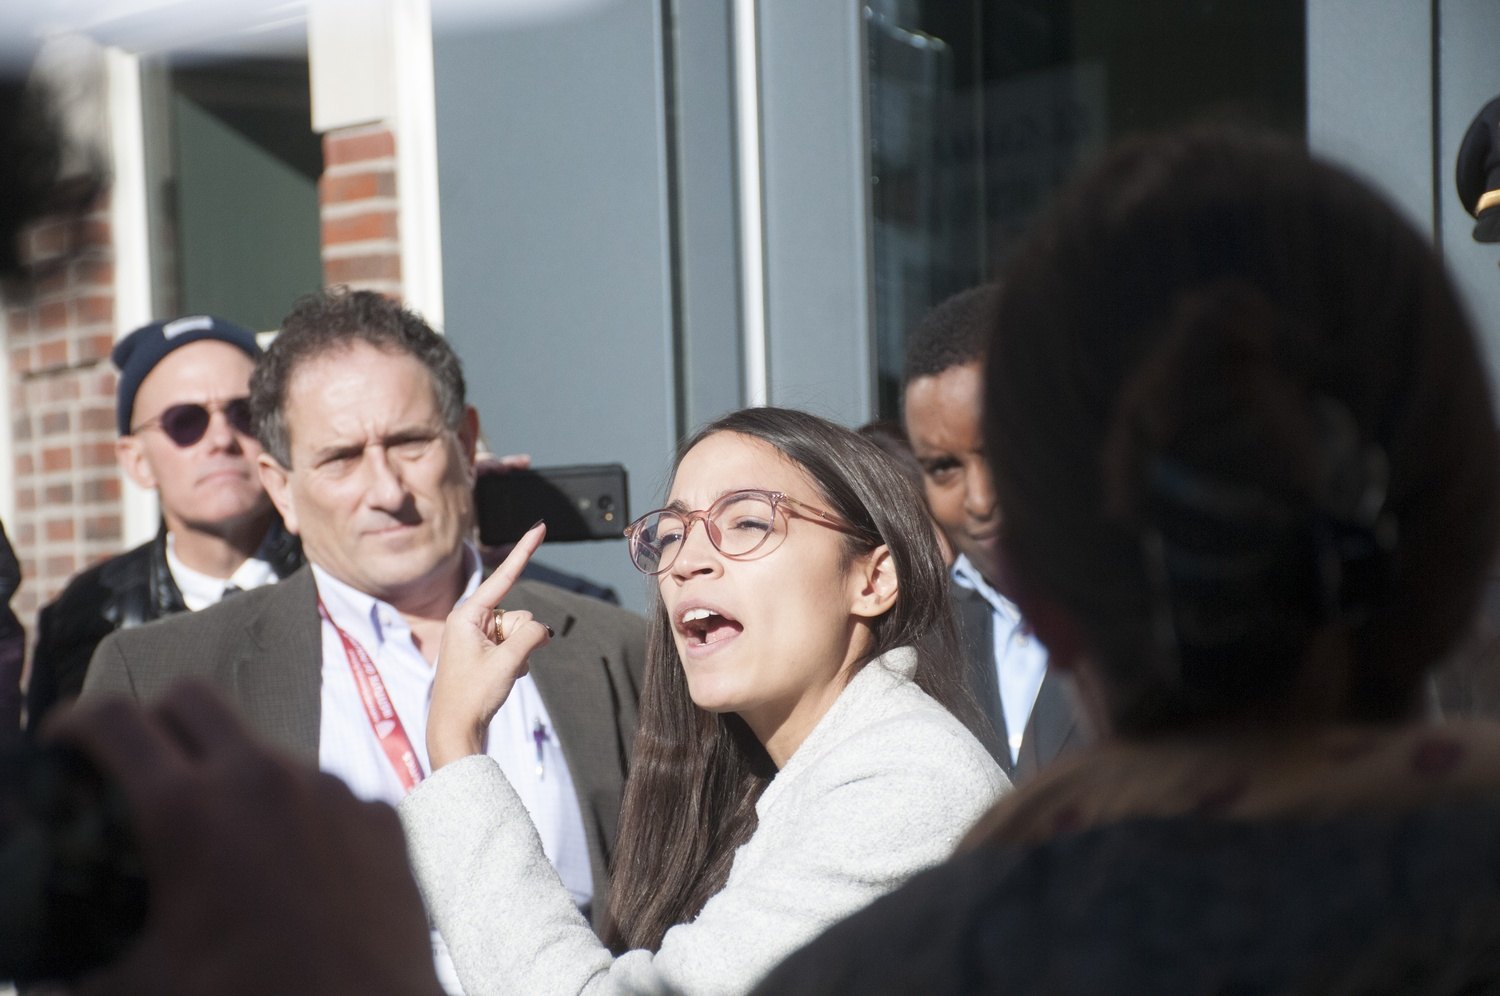 Alexandria Ocasio-Cortez joins a rally to call on the IOP to include environmental justice programming during Harvard's Bipartisan Program for Newly Elected Members of Congress.